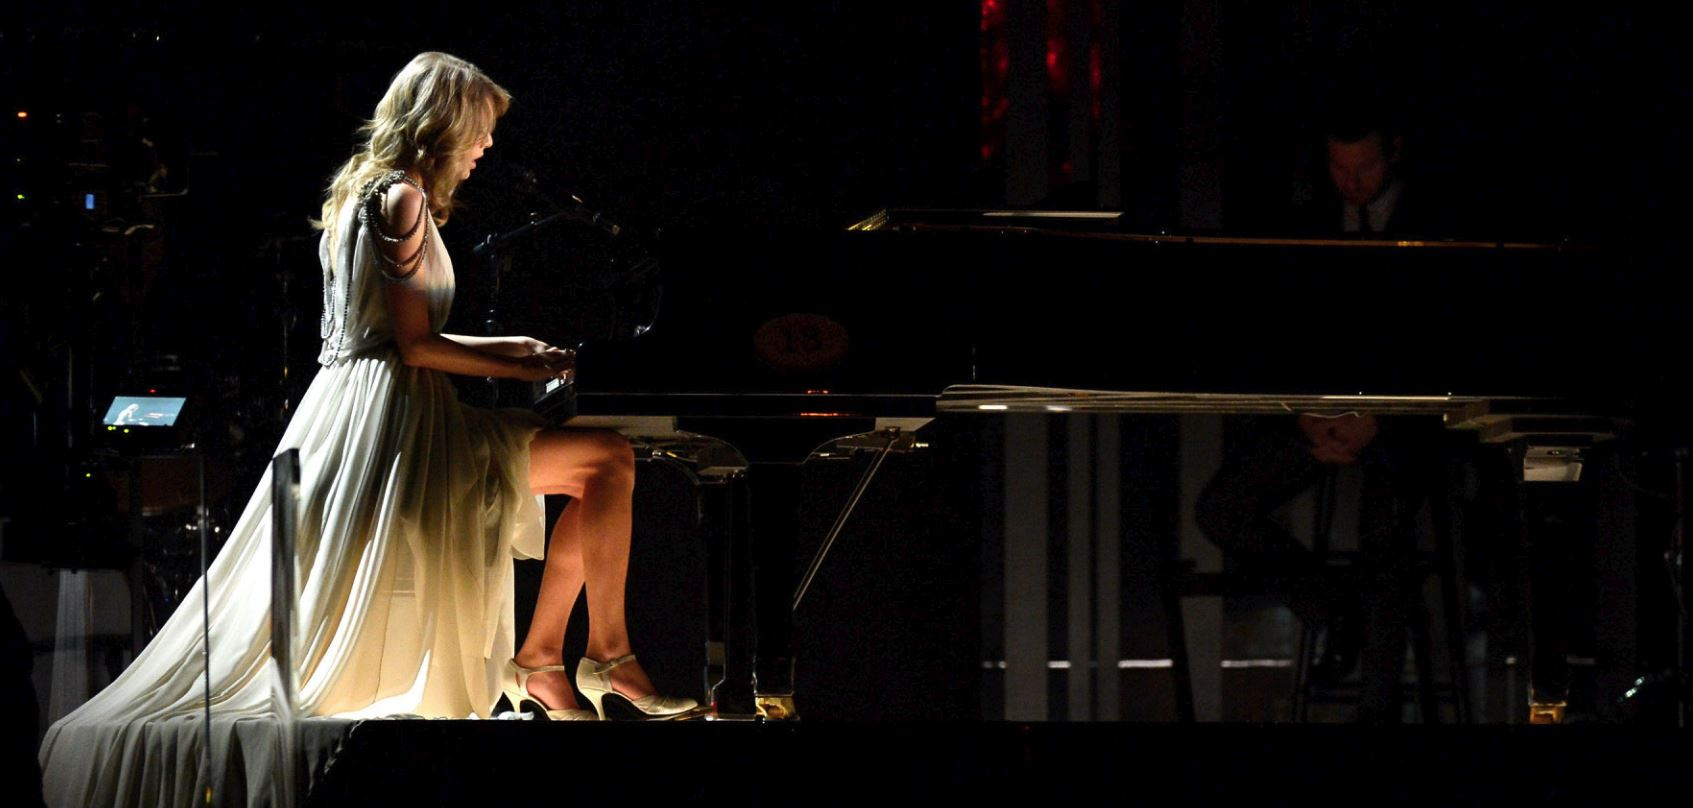 taylor swift all too well lyrics review song meaning